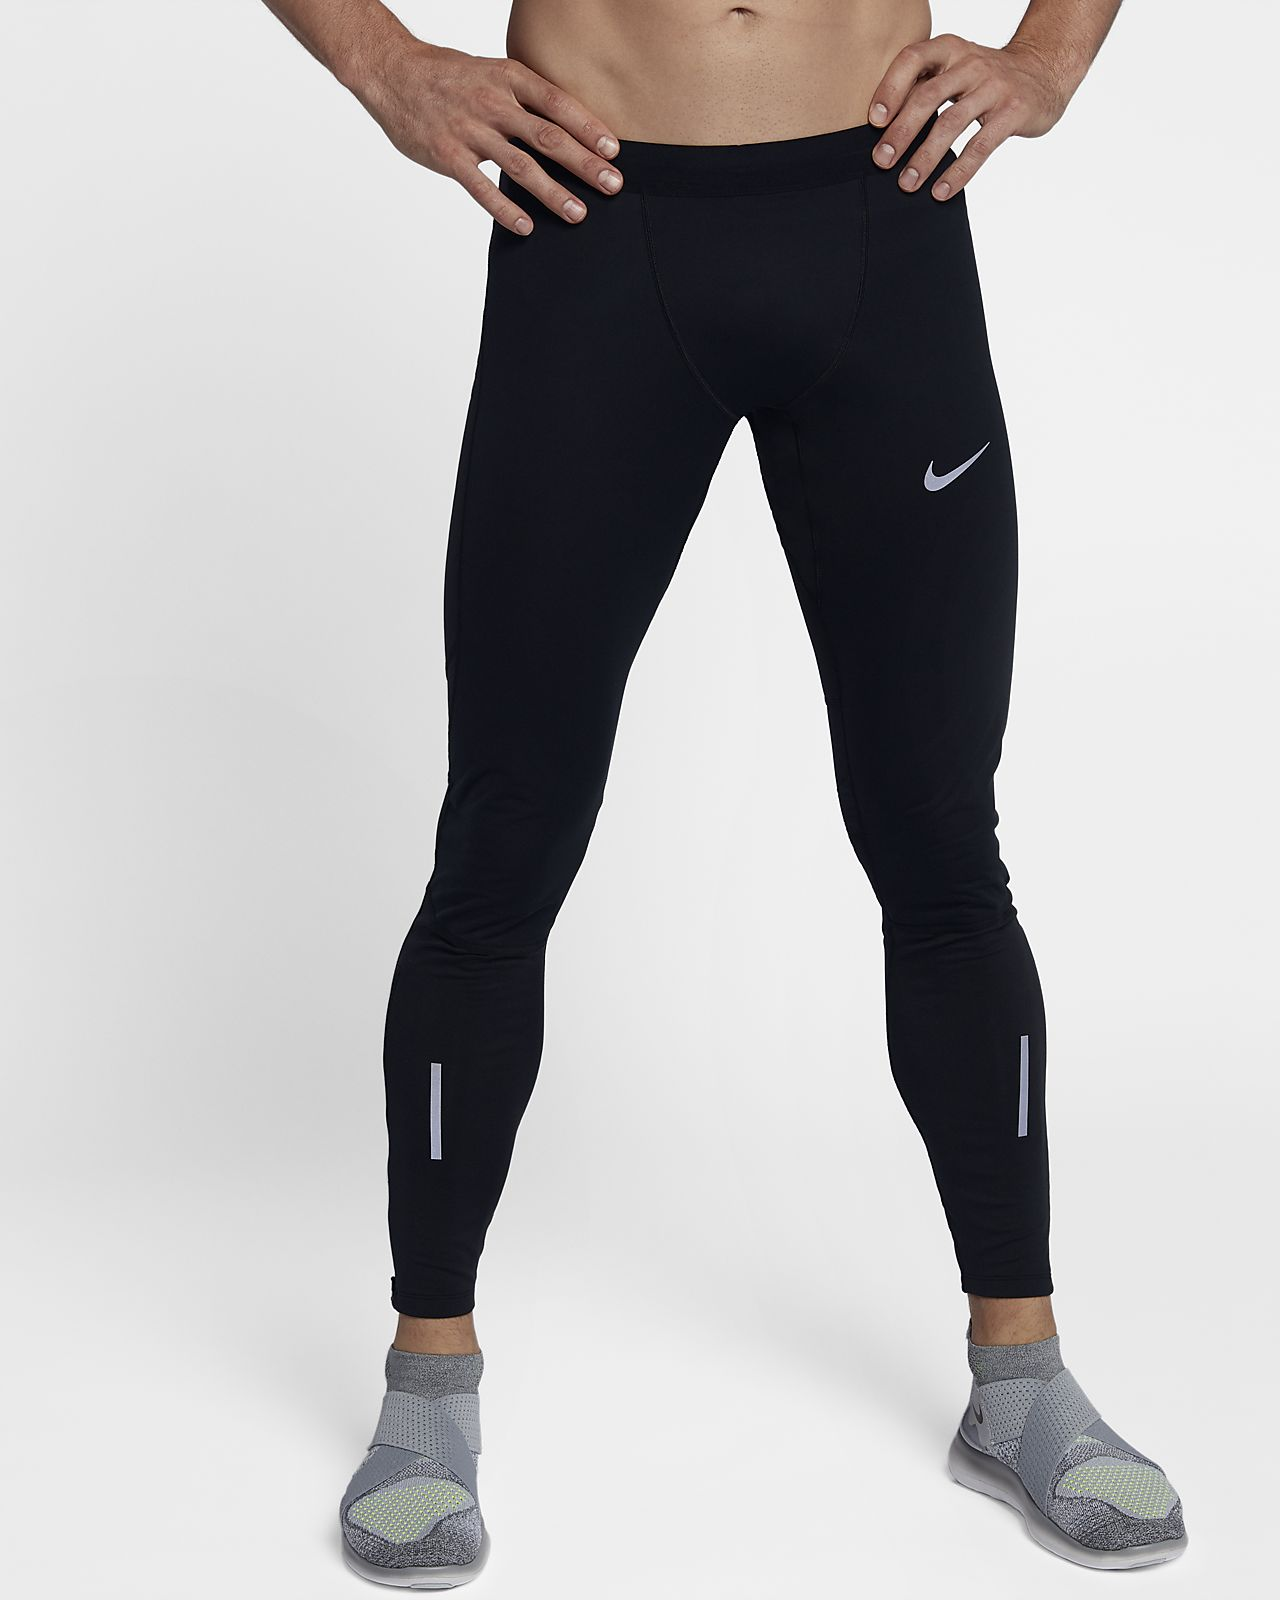 Running Tech Shield Nike Hombre De Es Mallas Cm 76 wAawIqnP 4437455840972